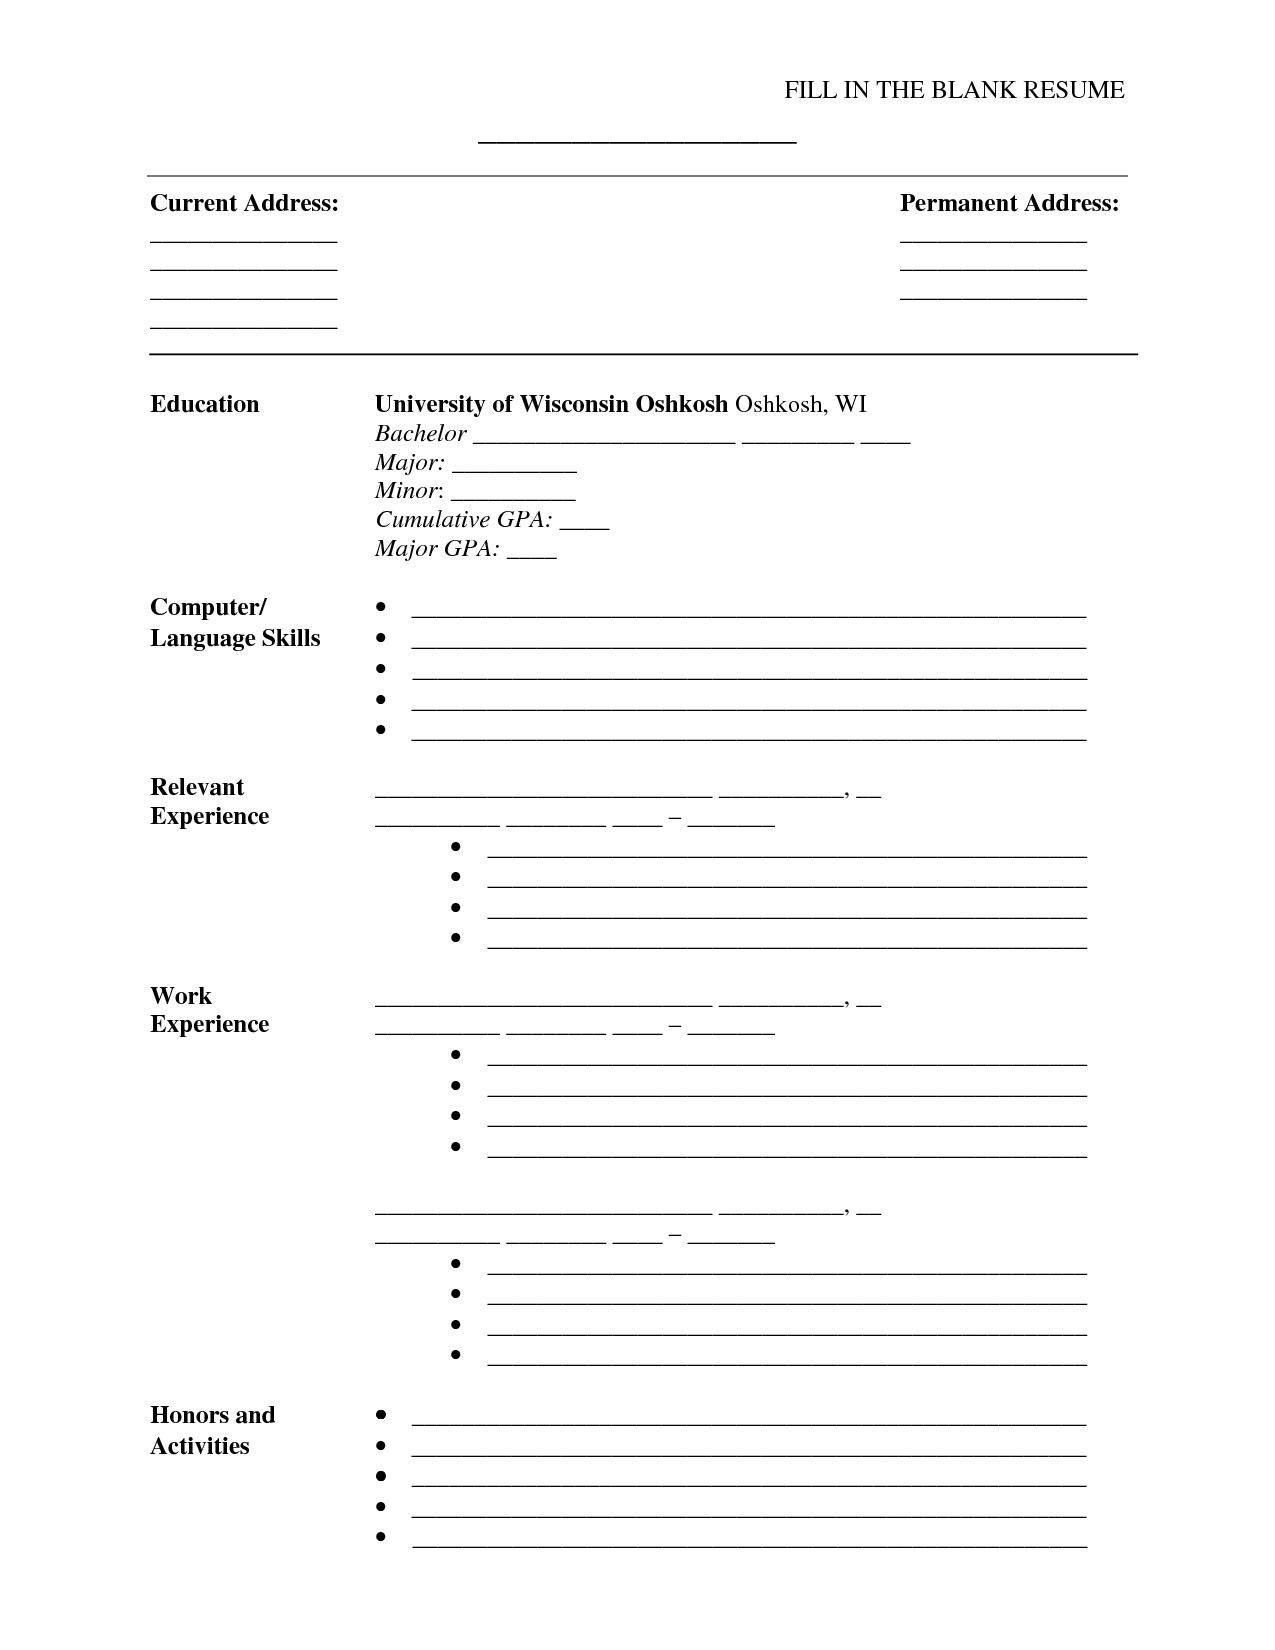 Fill In Resume Template Fill In the Blank Resume Pdf Umecareer